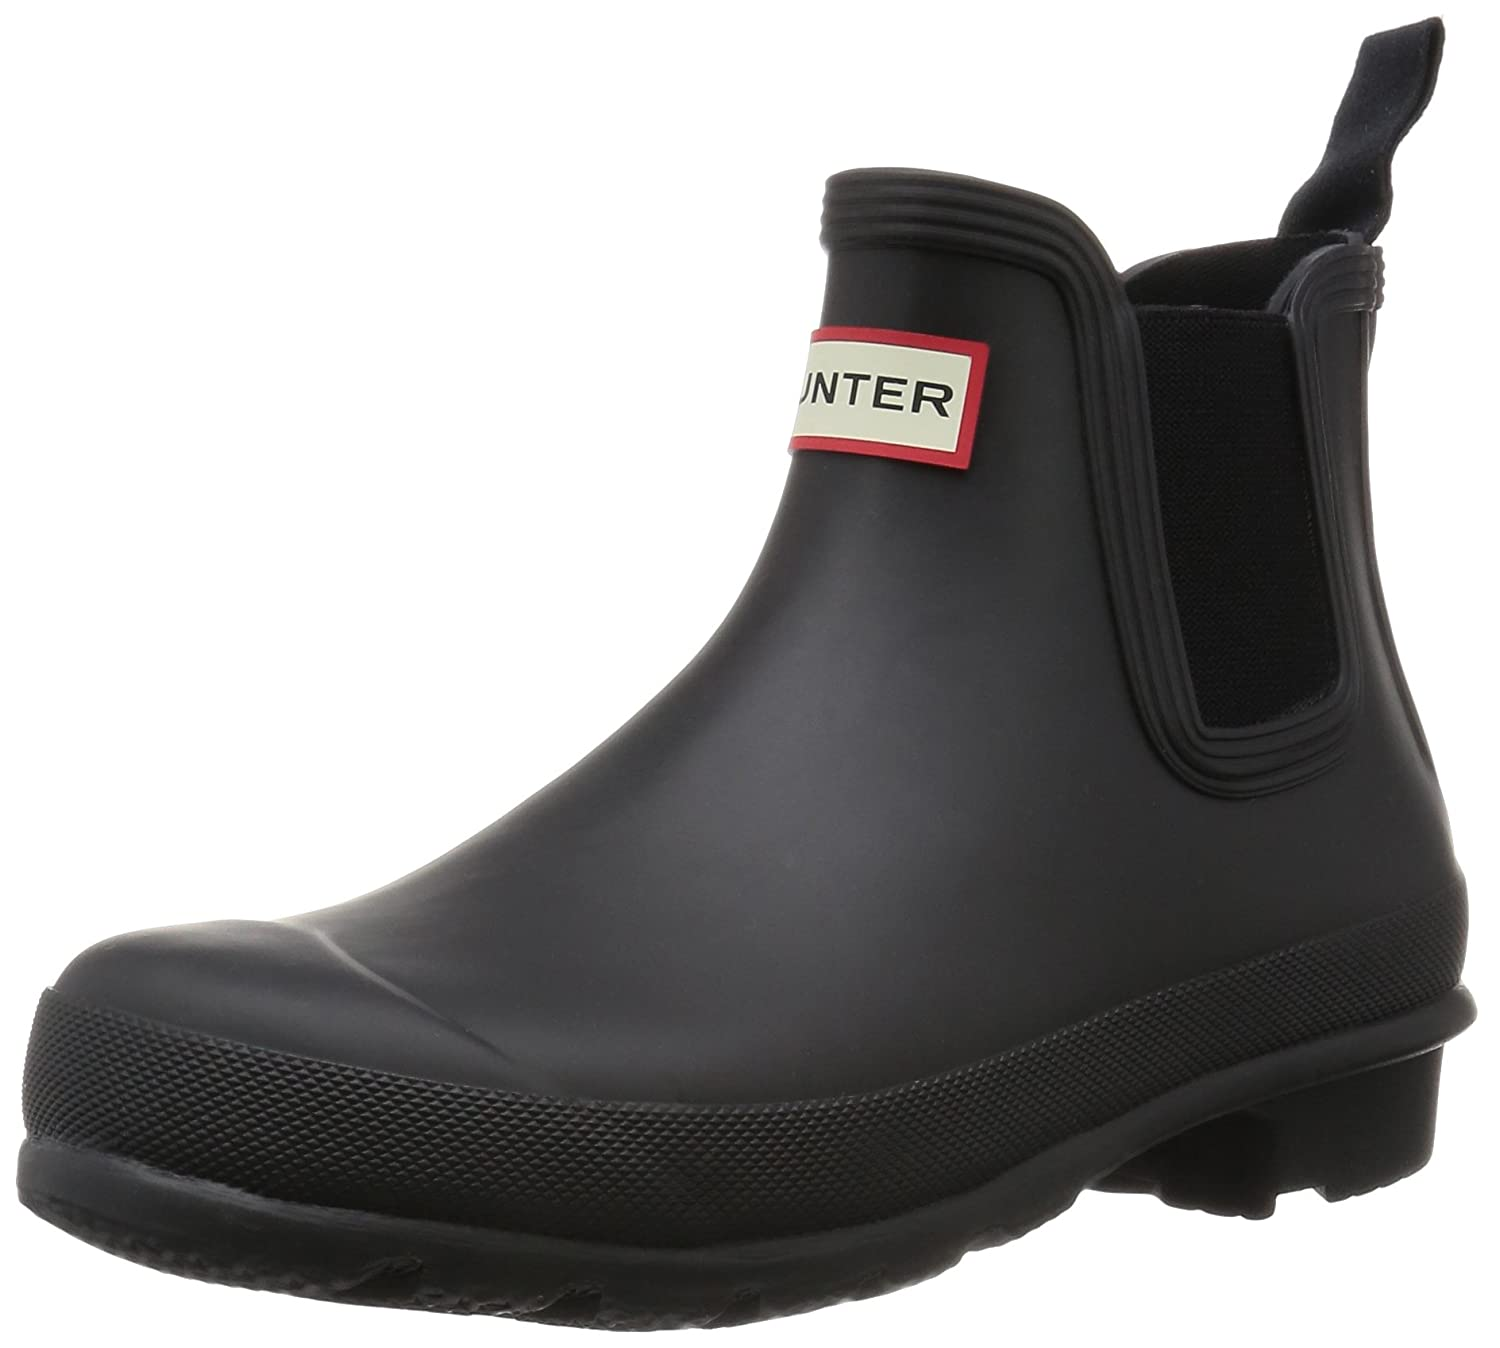 Hunter Women's Original Chelsea Rma Ankle-High Rubber Rain Boot B014QURU98 9 B(M) US|Black